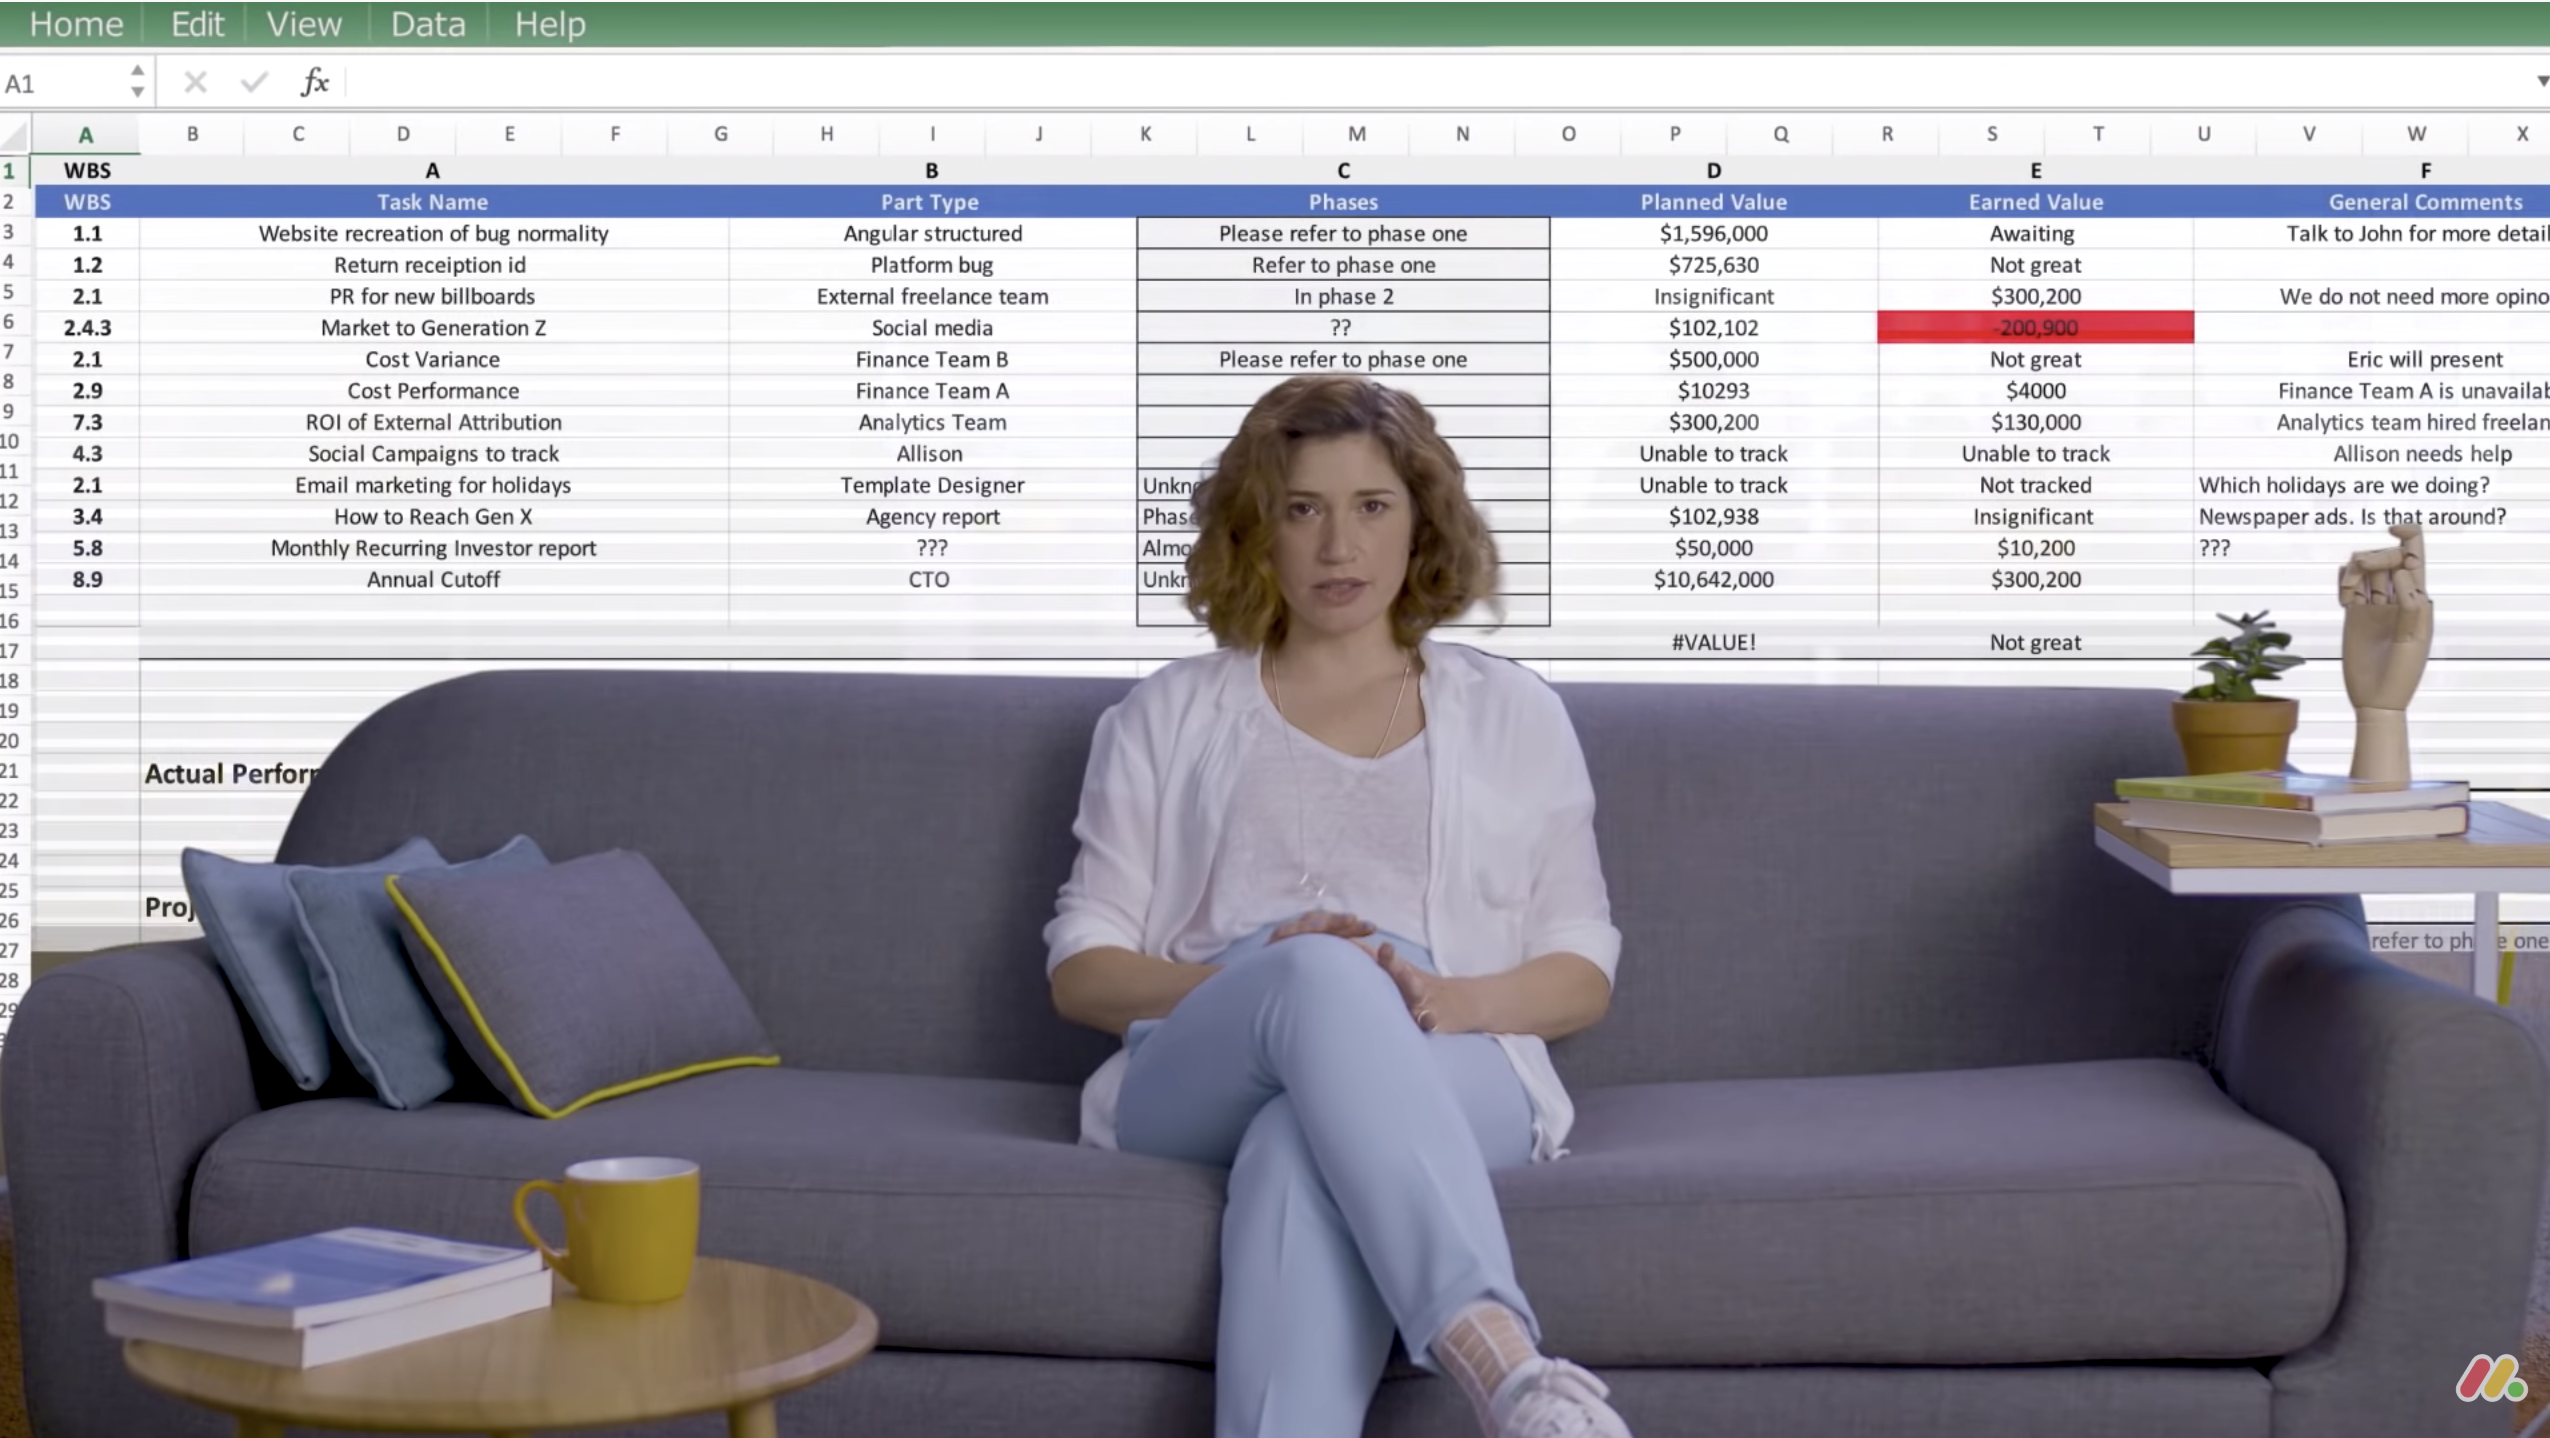 Digital marketing video screenshot .A Woman sitting on a couch in office, with a spreadsheet covering the background like a curtain